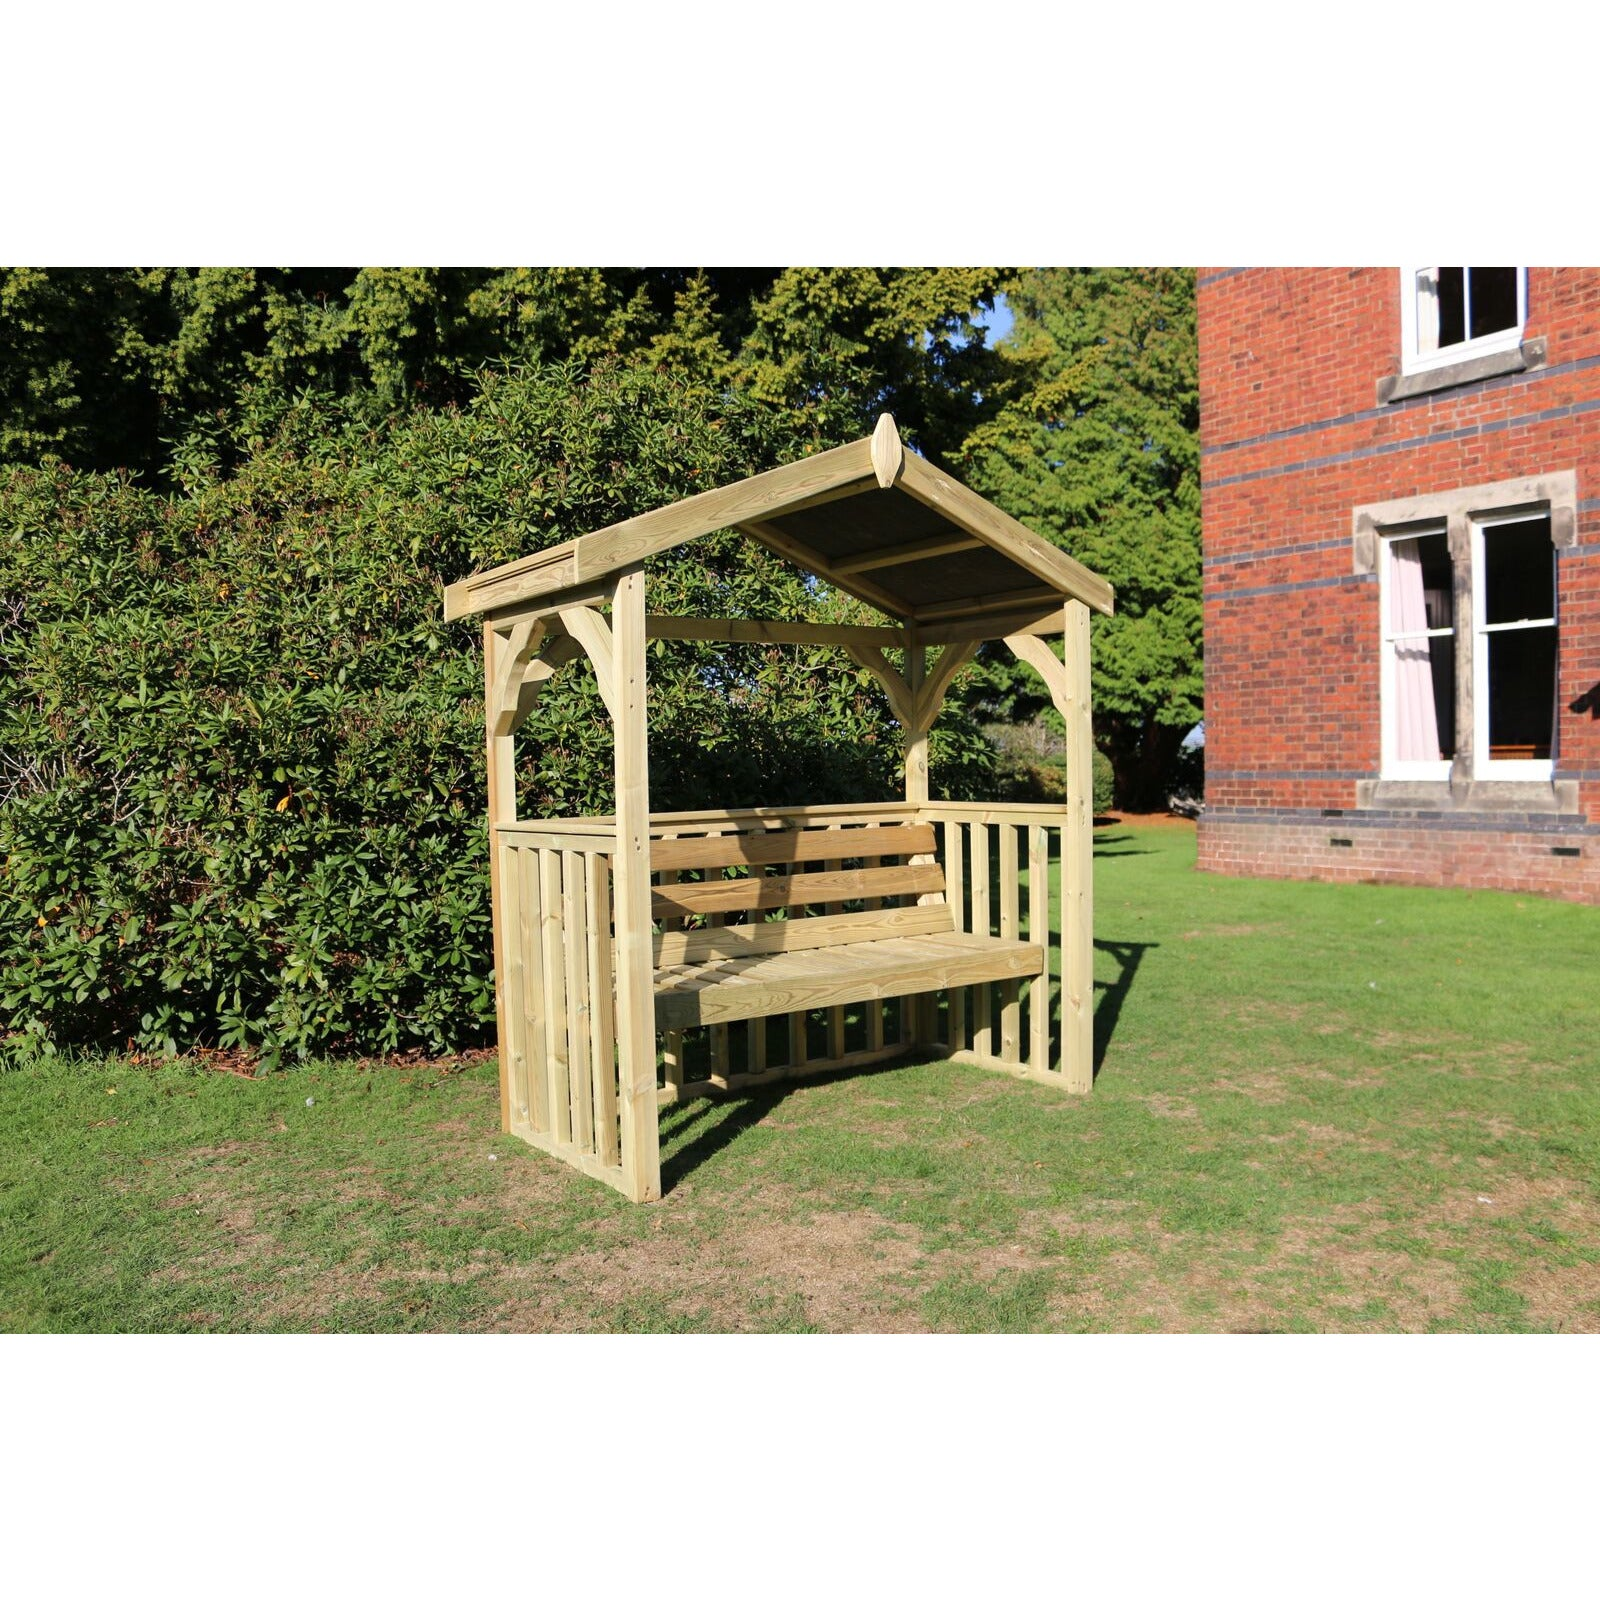 Churnet Valley Anastasia 3 Seater Arbour - GardenPromos